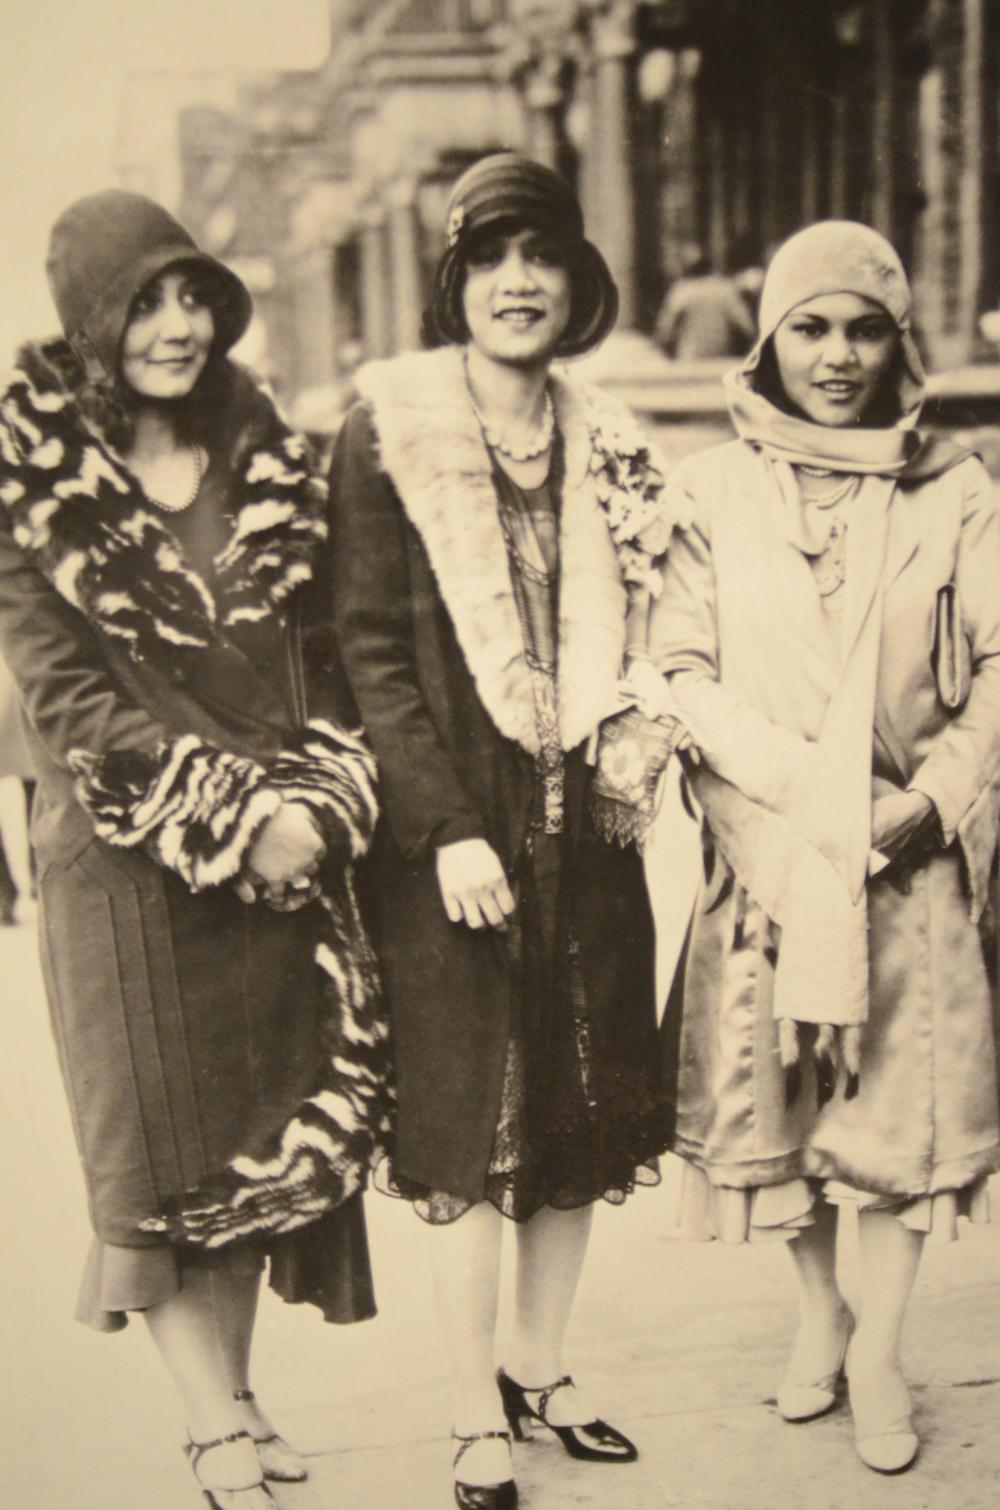 african americans in american society 1920s The harlem renaissance was a major step for the advancement of african americans in the american society during the 1920s the harlem renaissance brought about a.